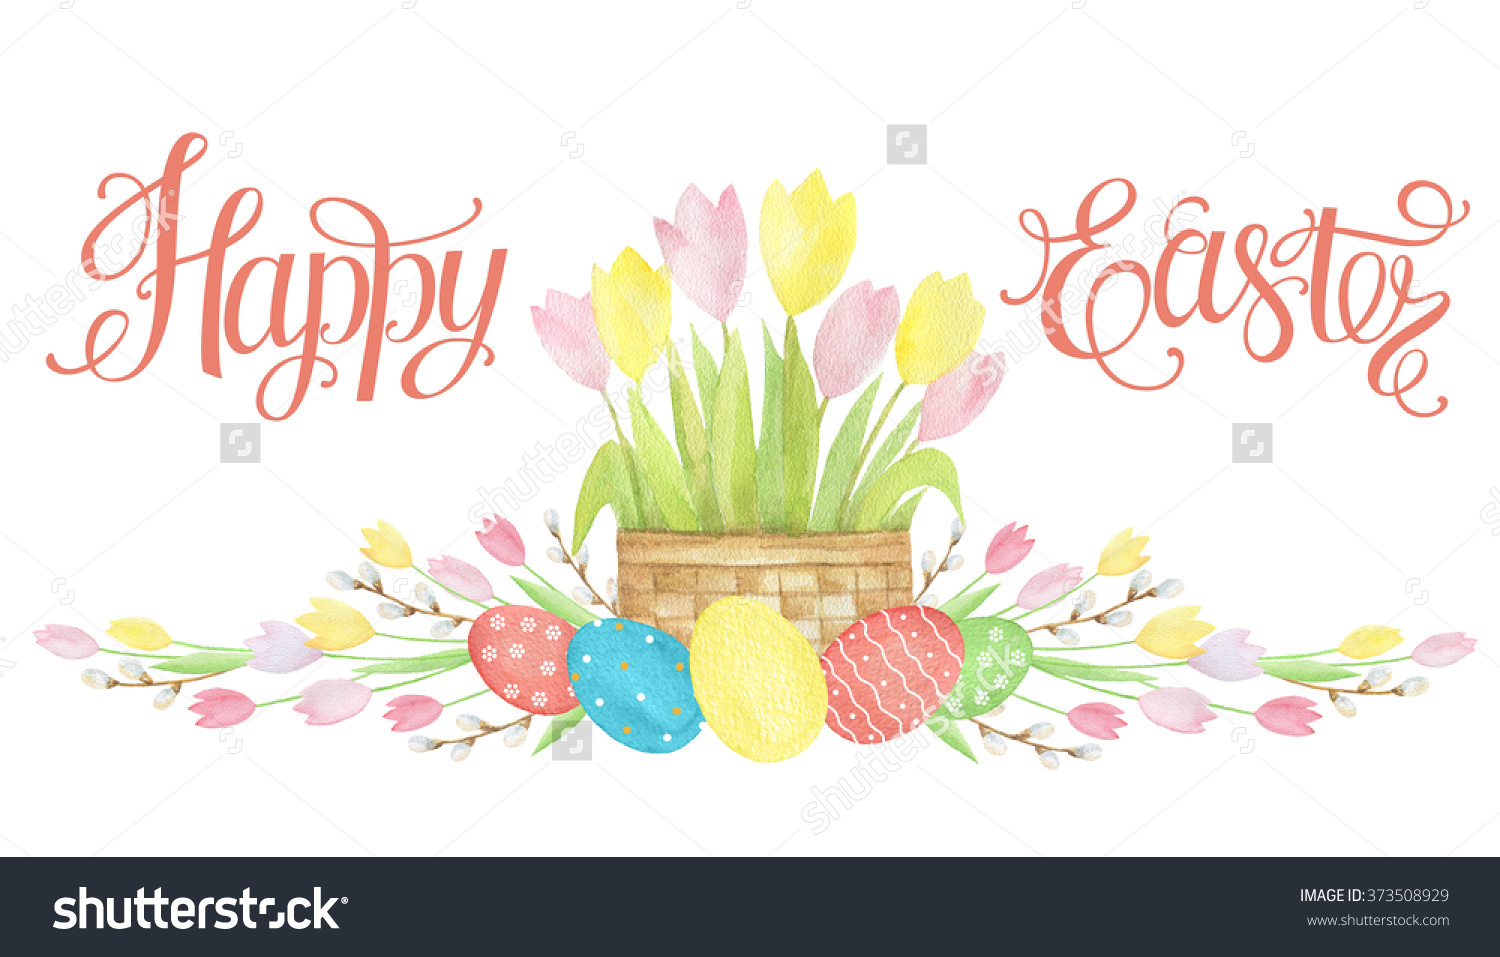 Happy easter basket clipart clipart transparent library Watercolor Easter Basket Eggs Happy Easter Stock Illustration ... clipart transparent library